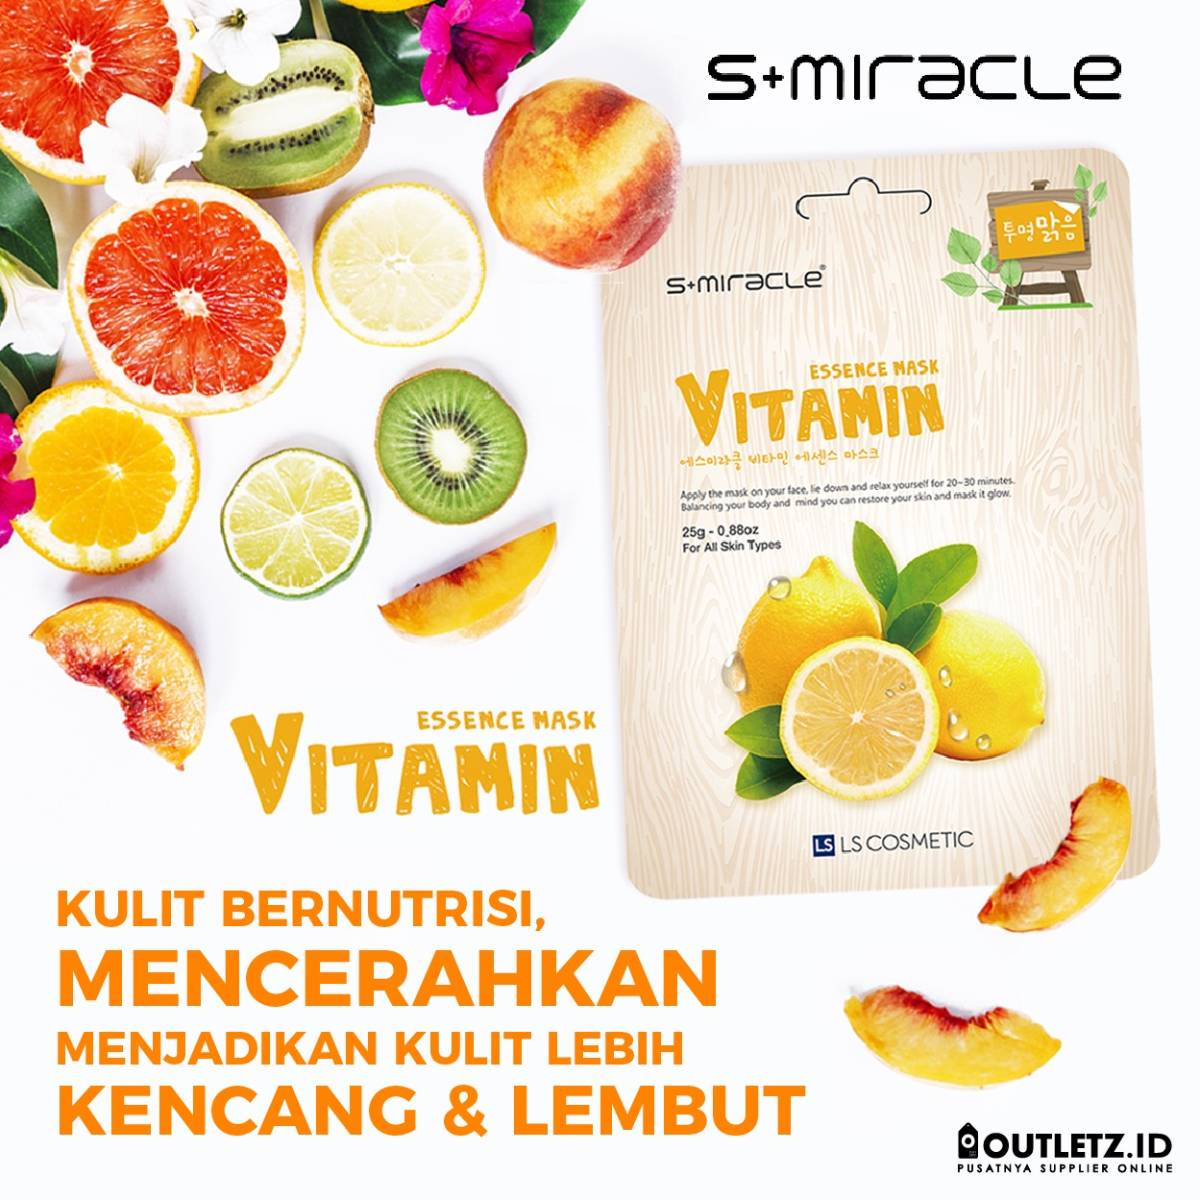 Masker Wajah Korea Vitamin - S+miracle Vitamin Essence Mask